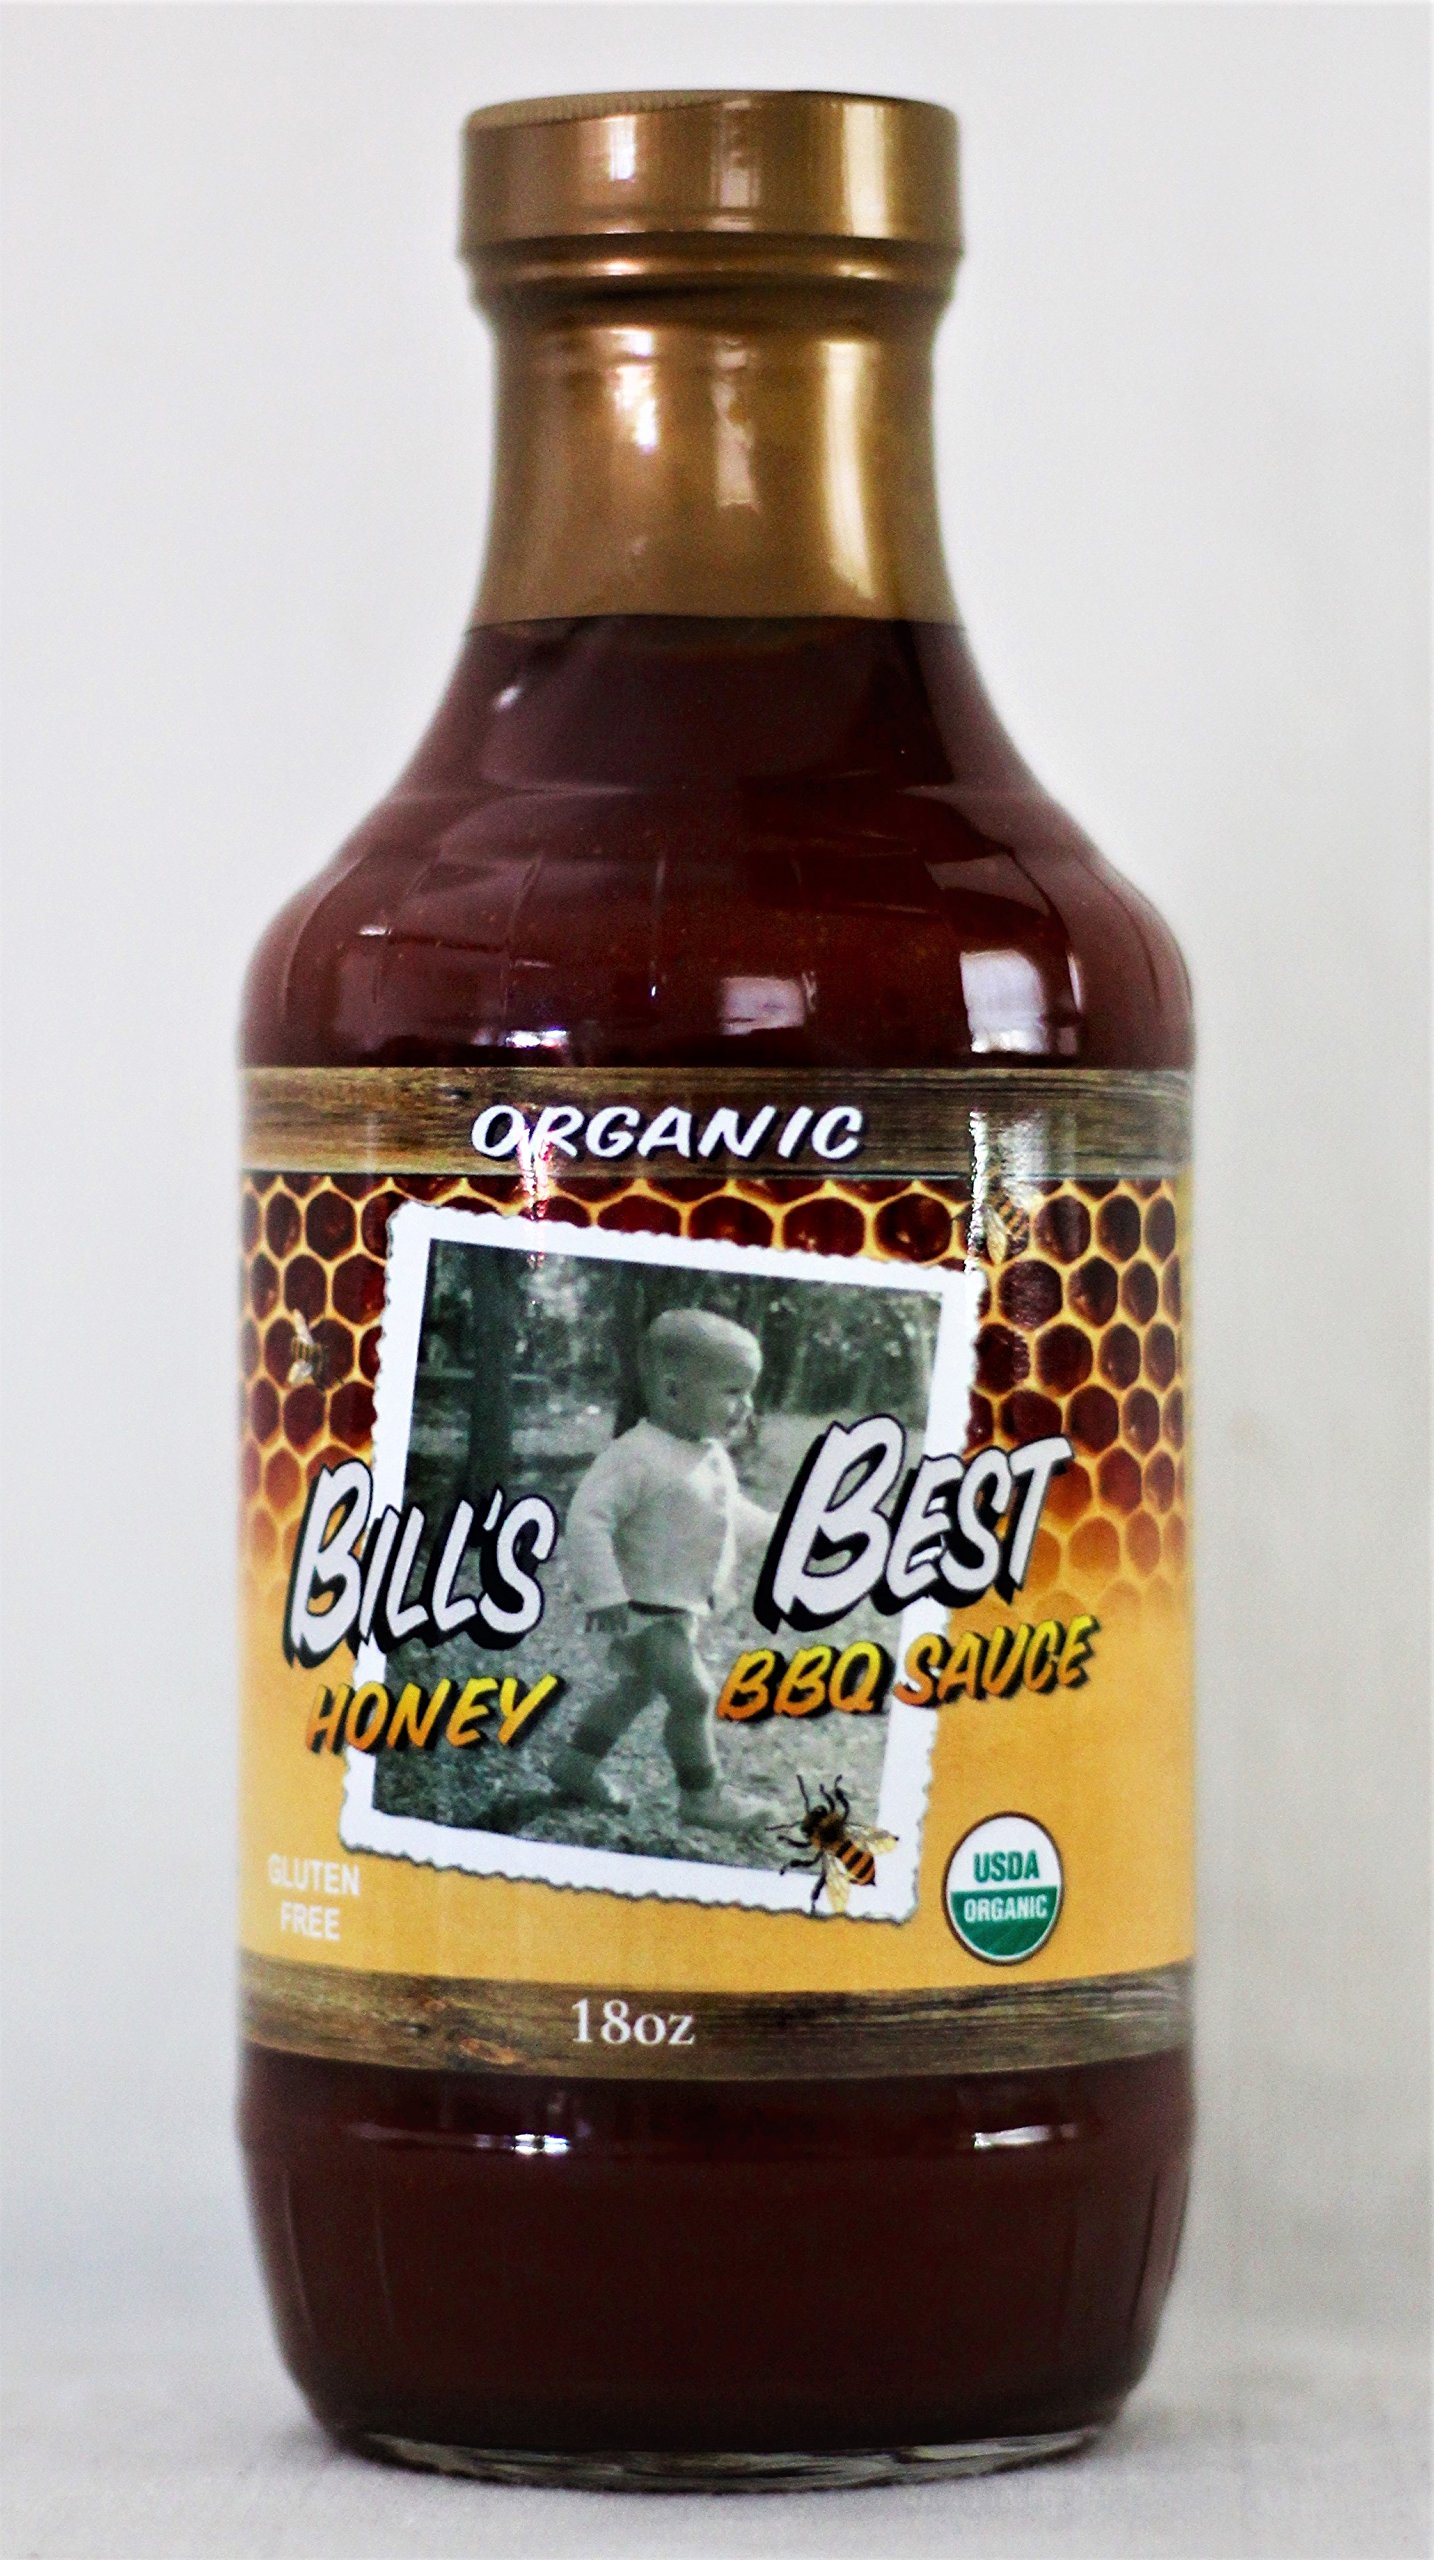 Bill's Best Organic BBQ Sauces, Honey